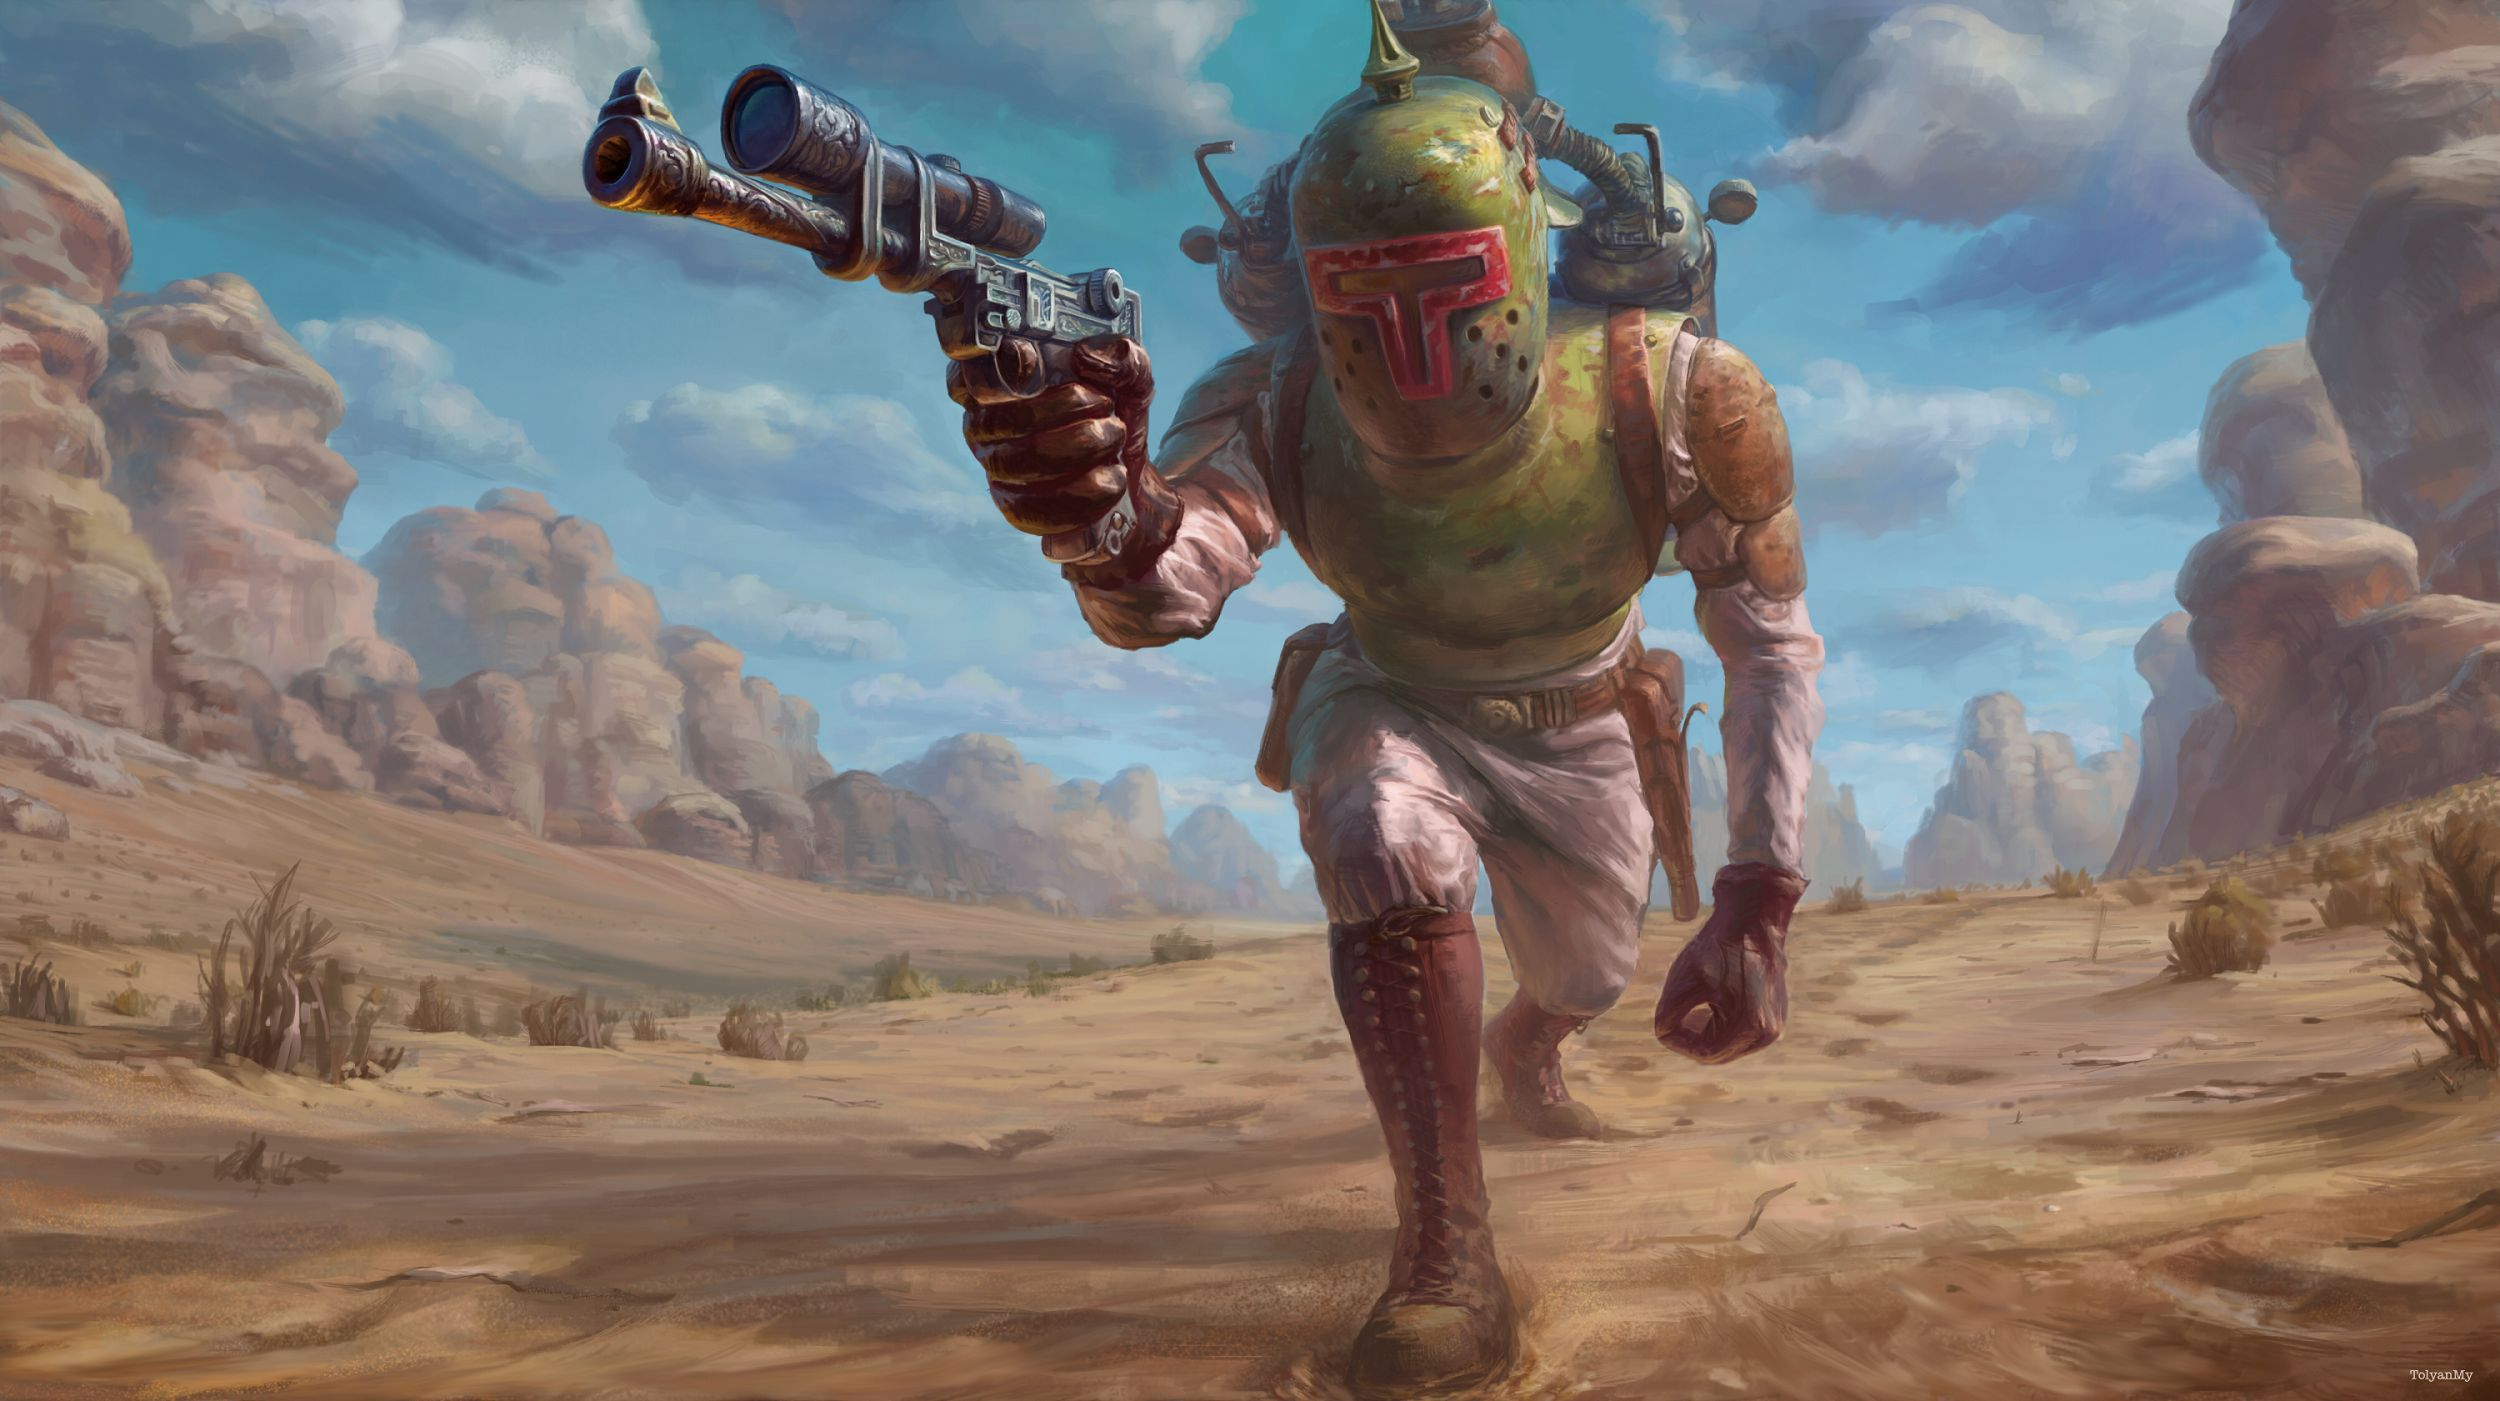 Boba Fett High Quality Wallpapers